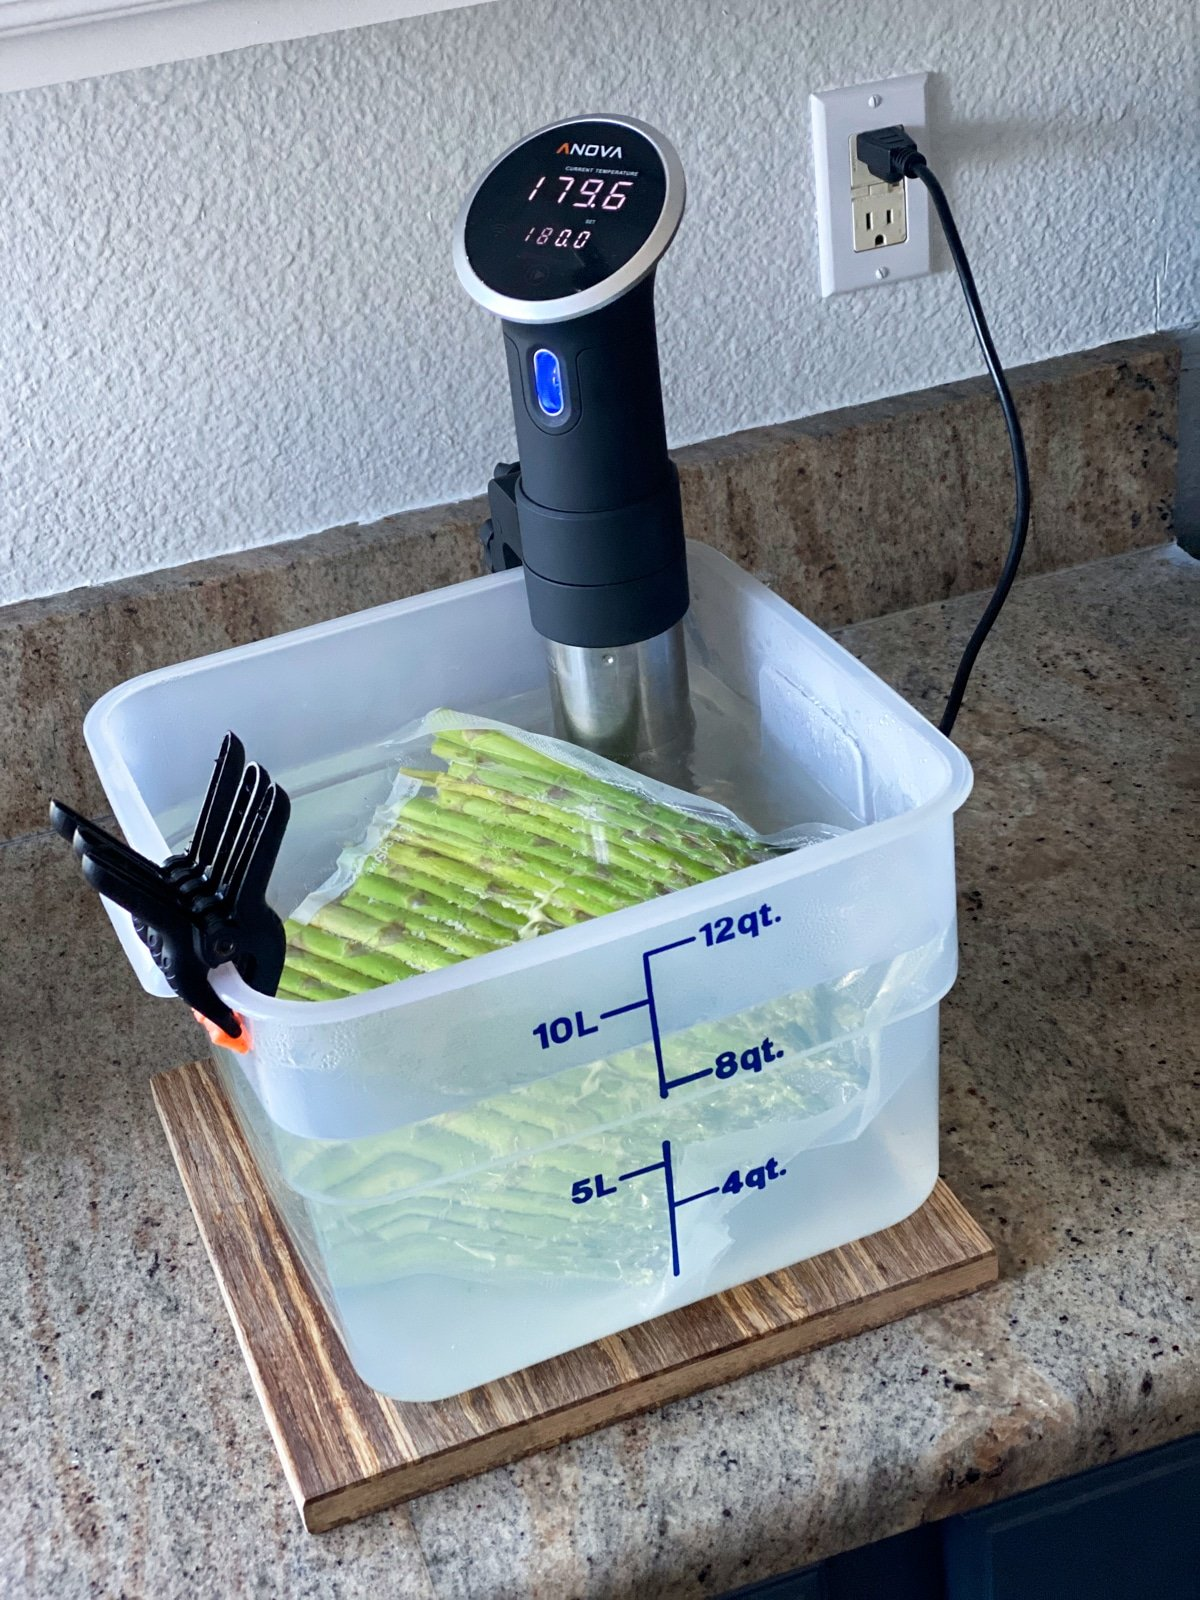 Sous vide asparagus at 180 with the anova sous vide cooker